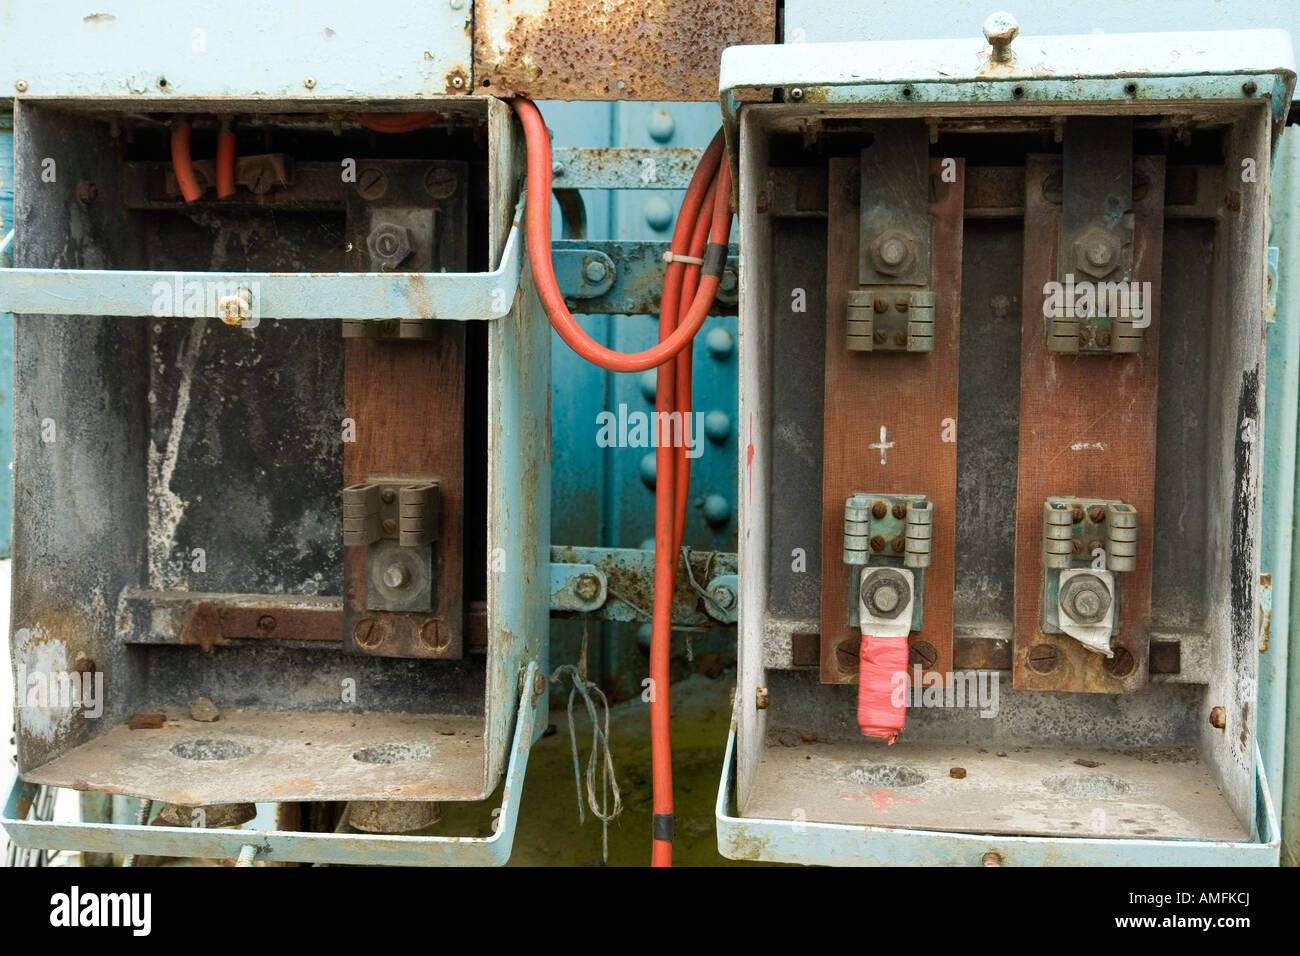 hight resolution of disused electrical fuse box on the site of the former john brown engineering clydebank glasgow scotland europe